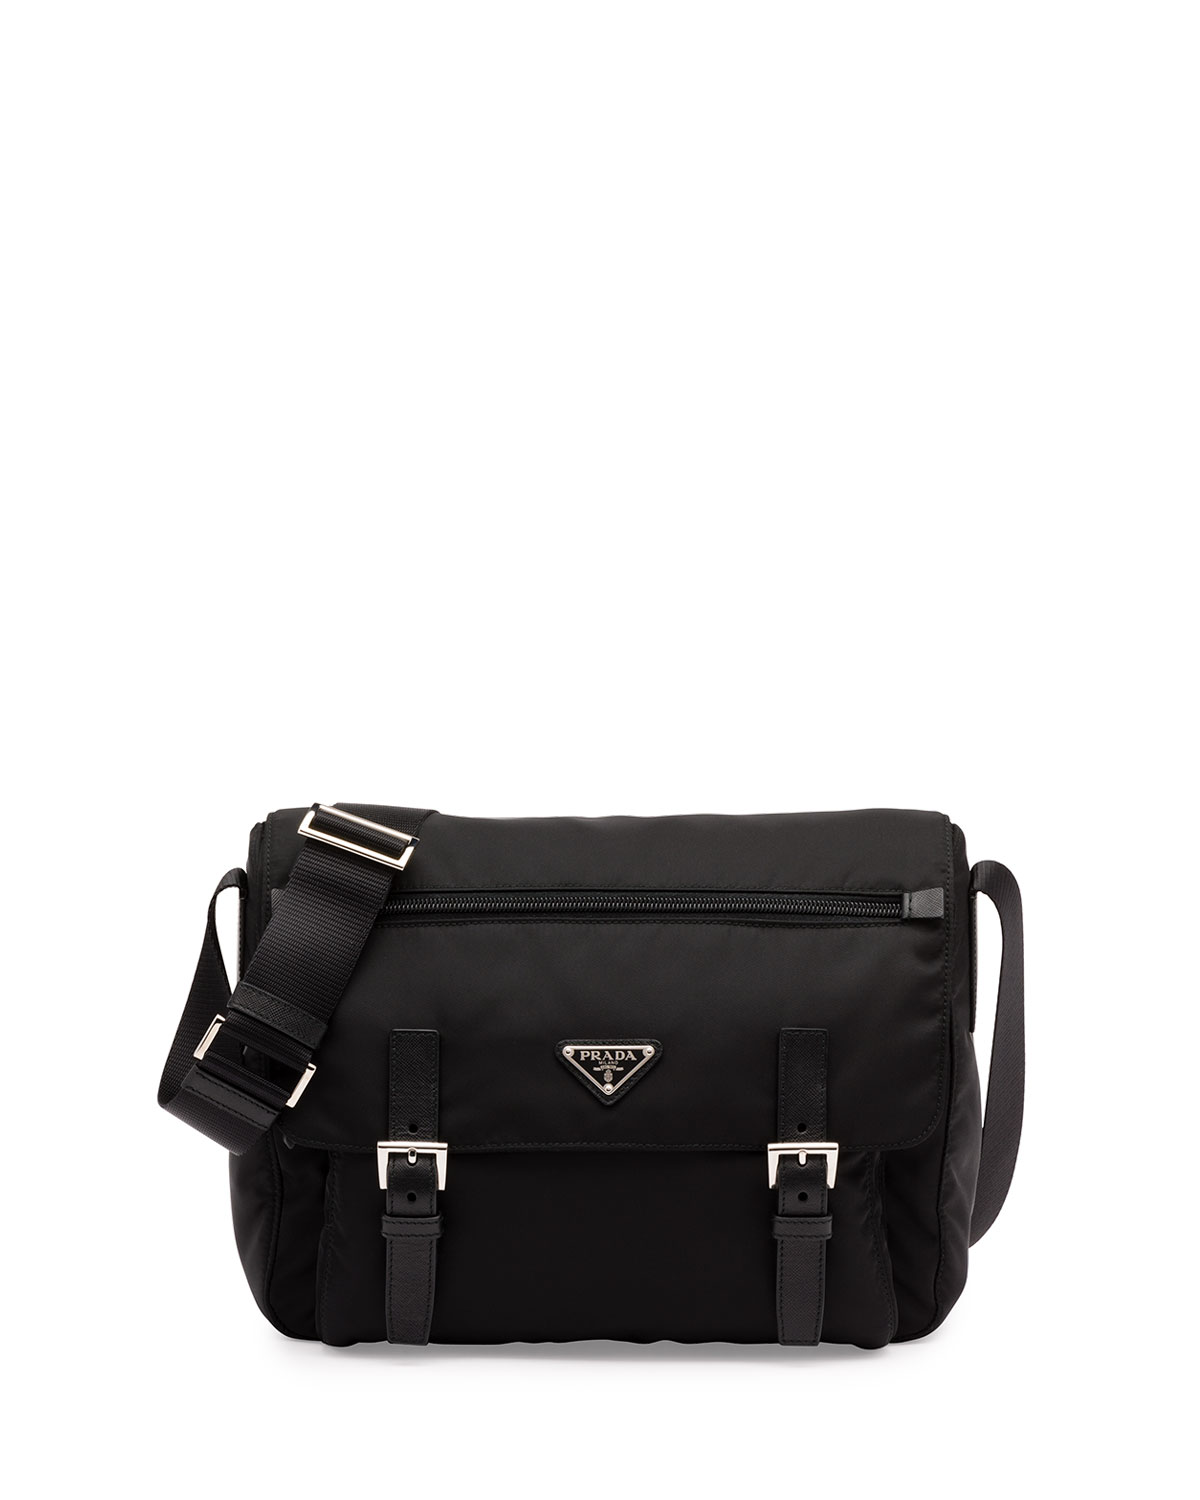 casual shoes outlet online wide varieties prada messenger